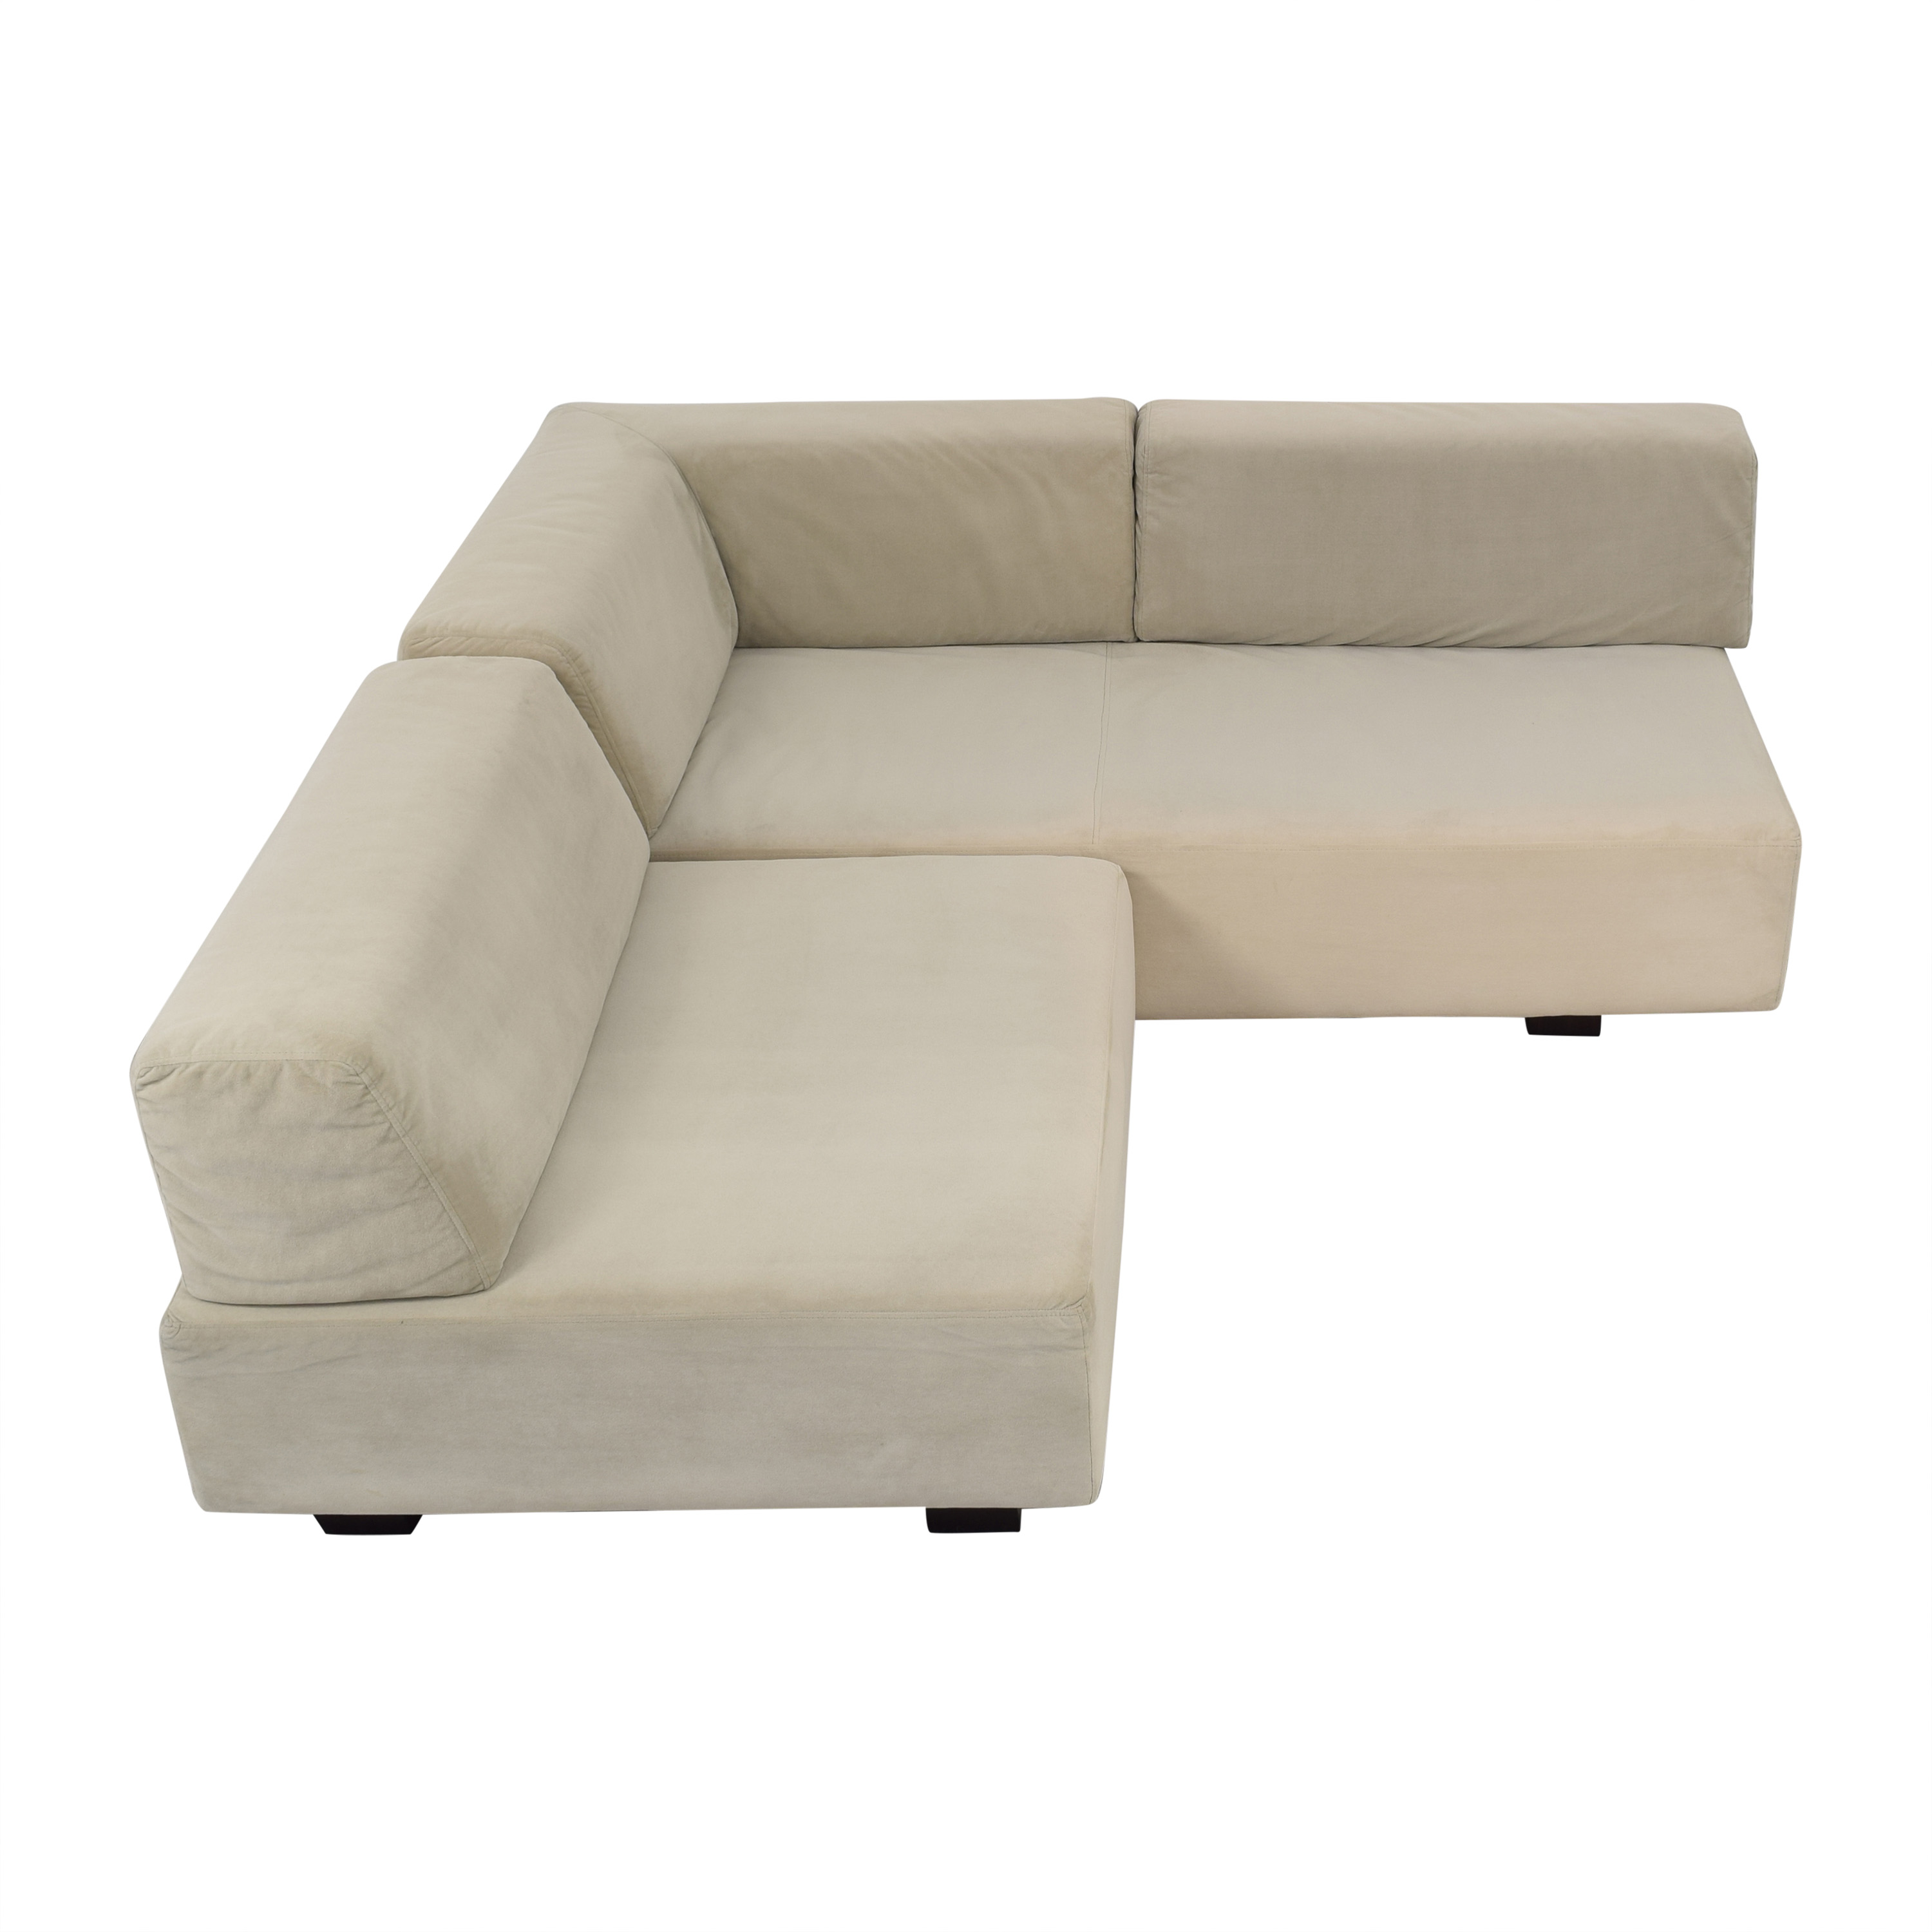 West Elm Tillary Adjustable Sectional Sofa / Sectionals